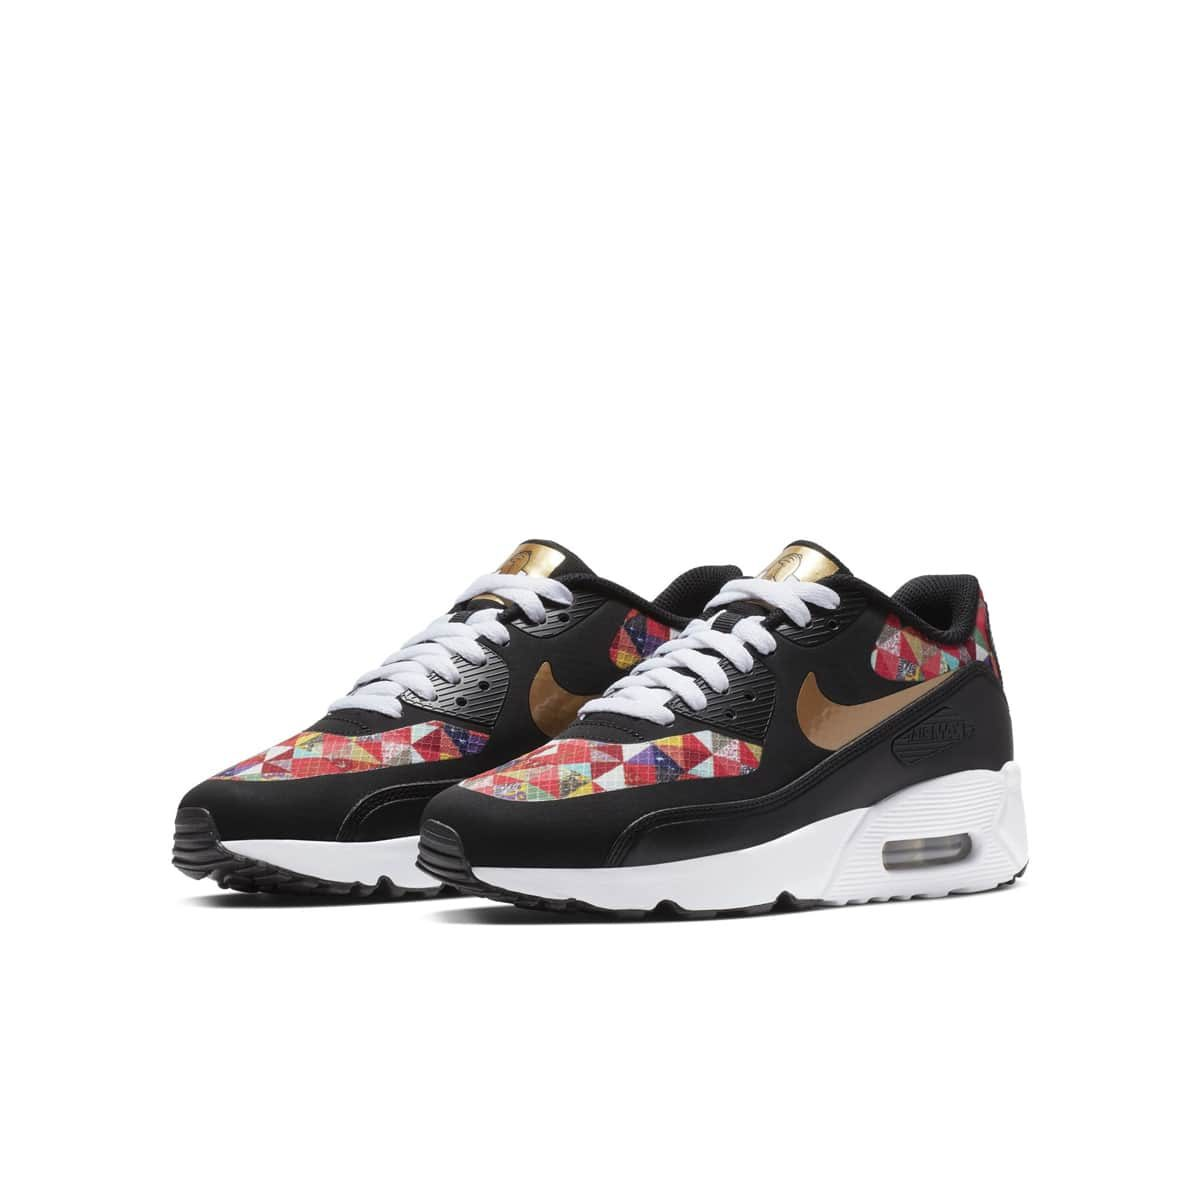 Official Look At The Nike Air Max 90 Ultra 2.0 CNY Chinese